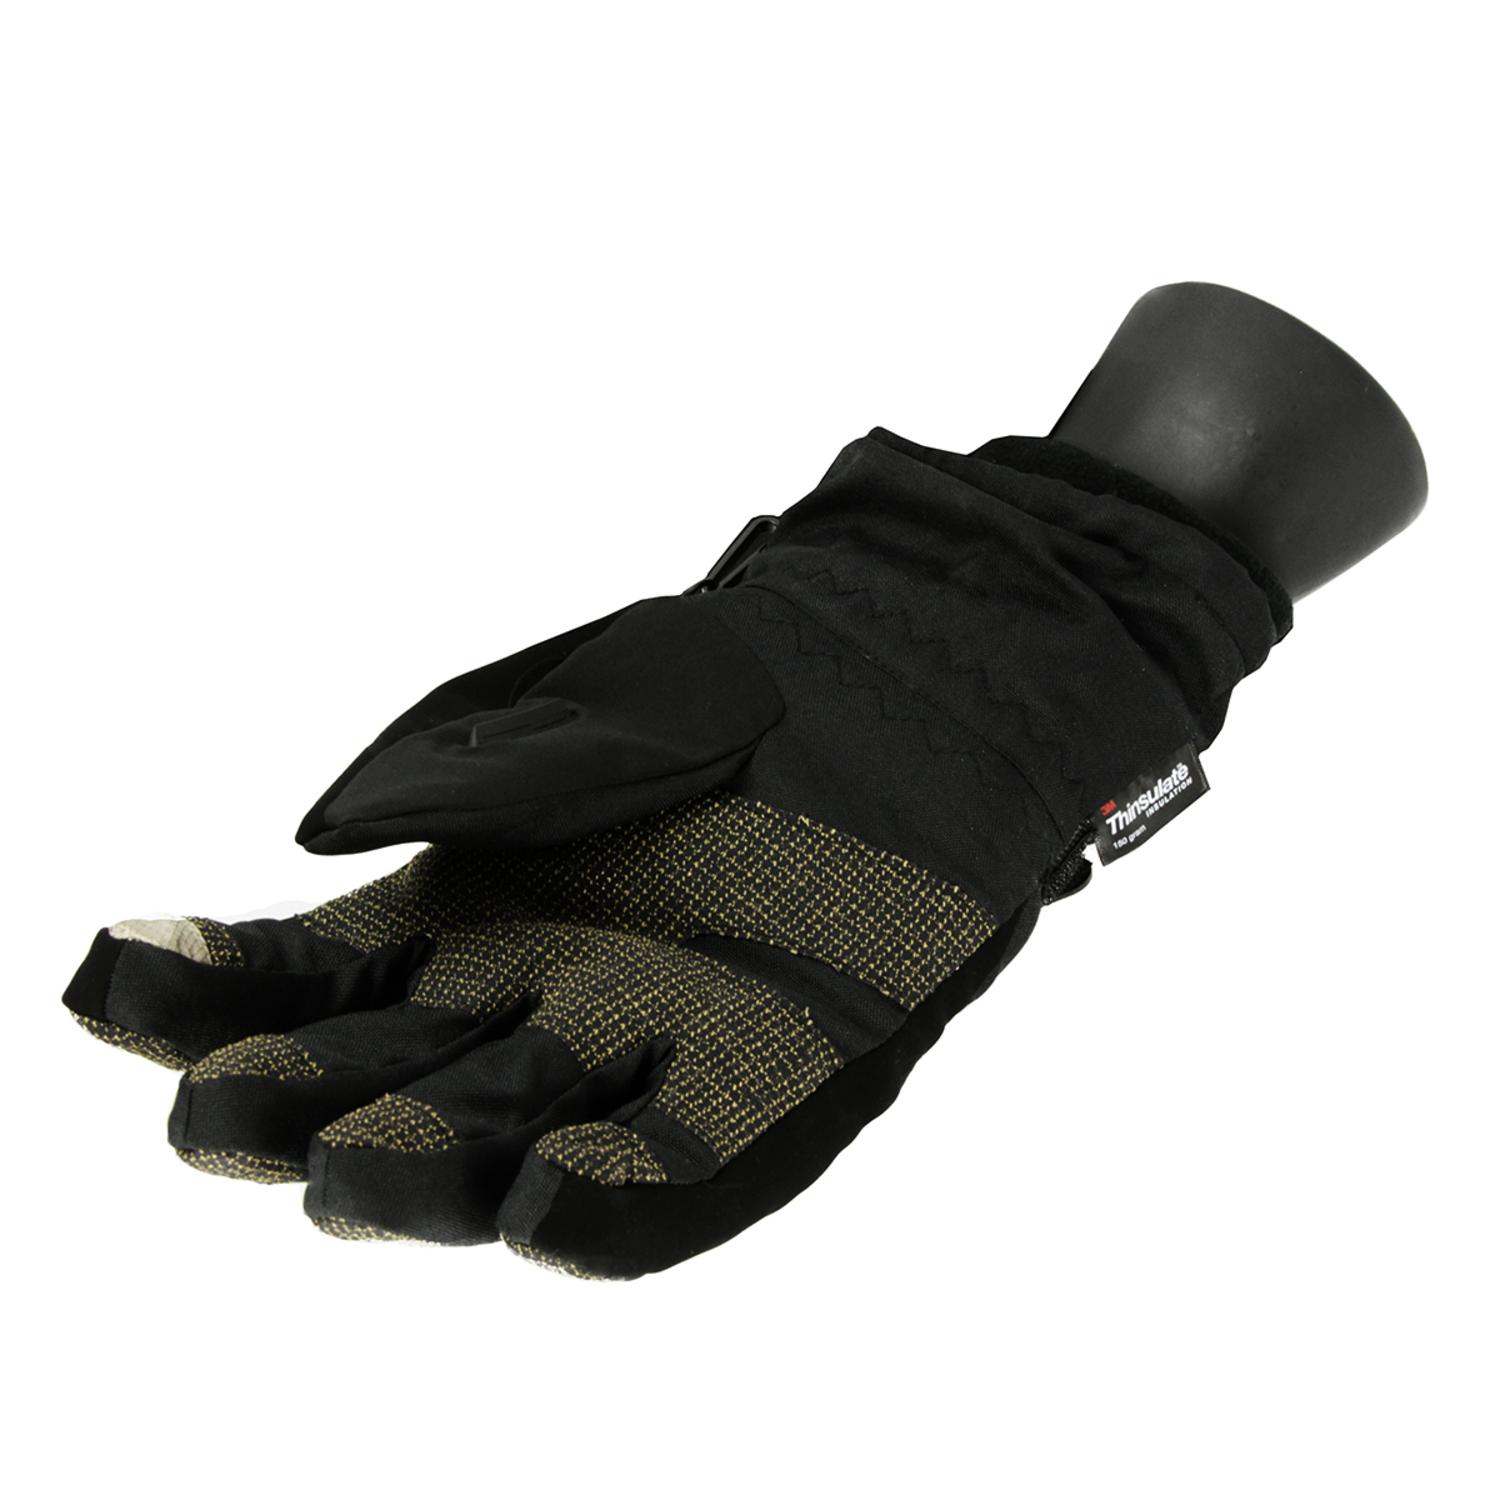 Mens leather gloves thinsulate - Men S Black Softshell Winter Thinsulate Insulated Touchscreen Ski Freestyle Gloves Large Walmart Com